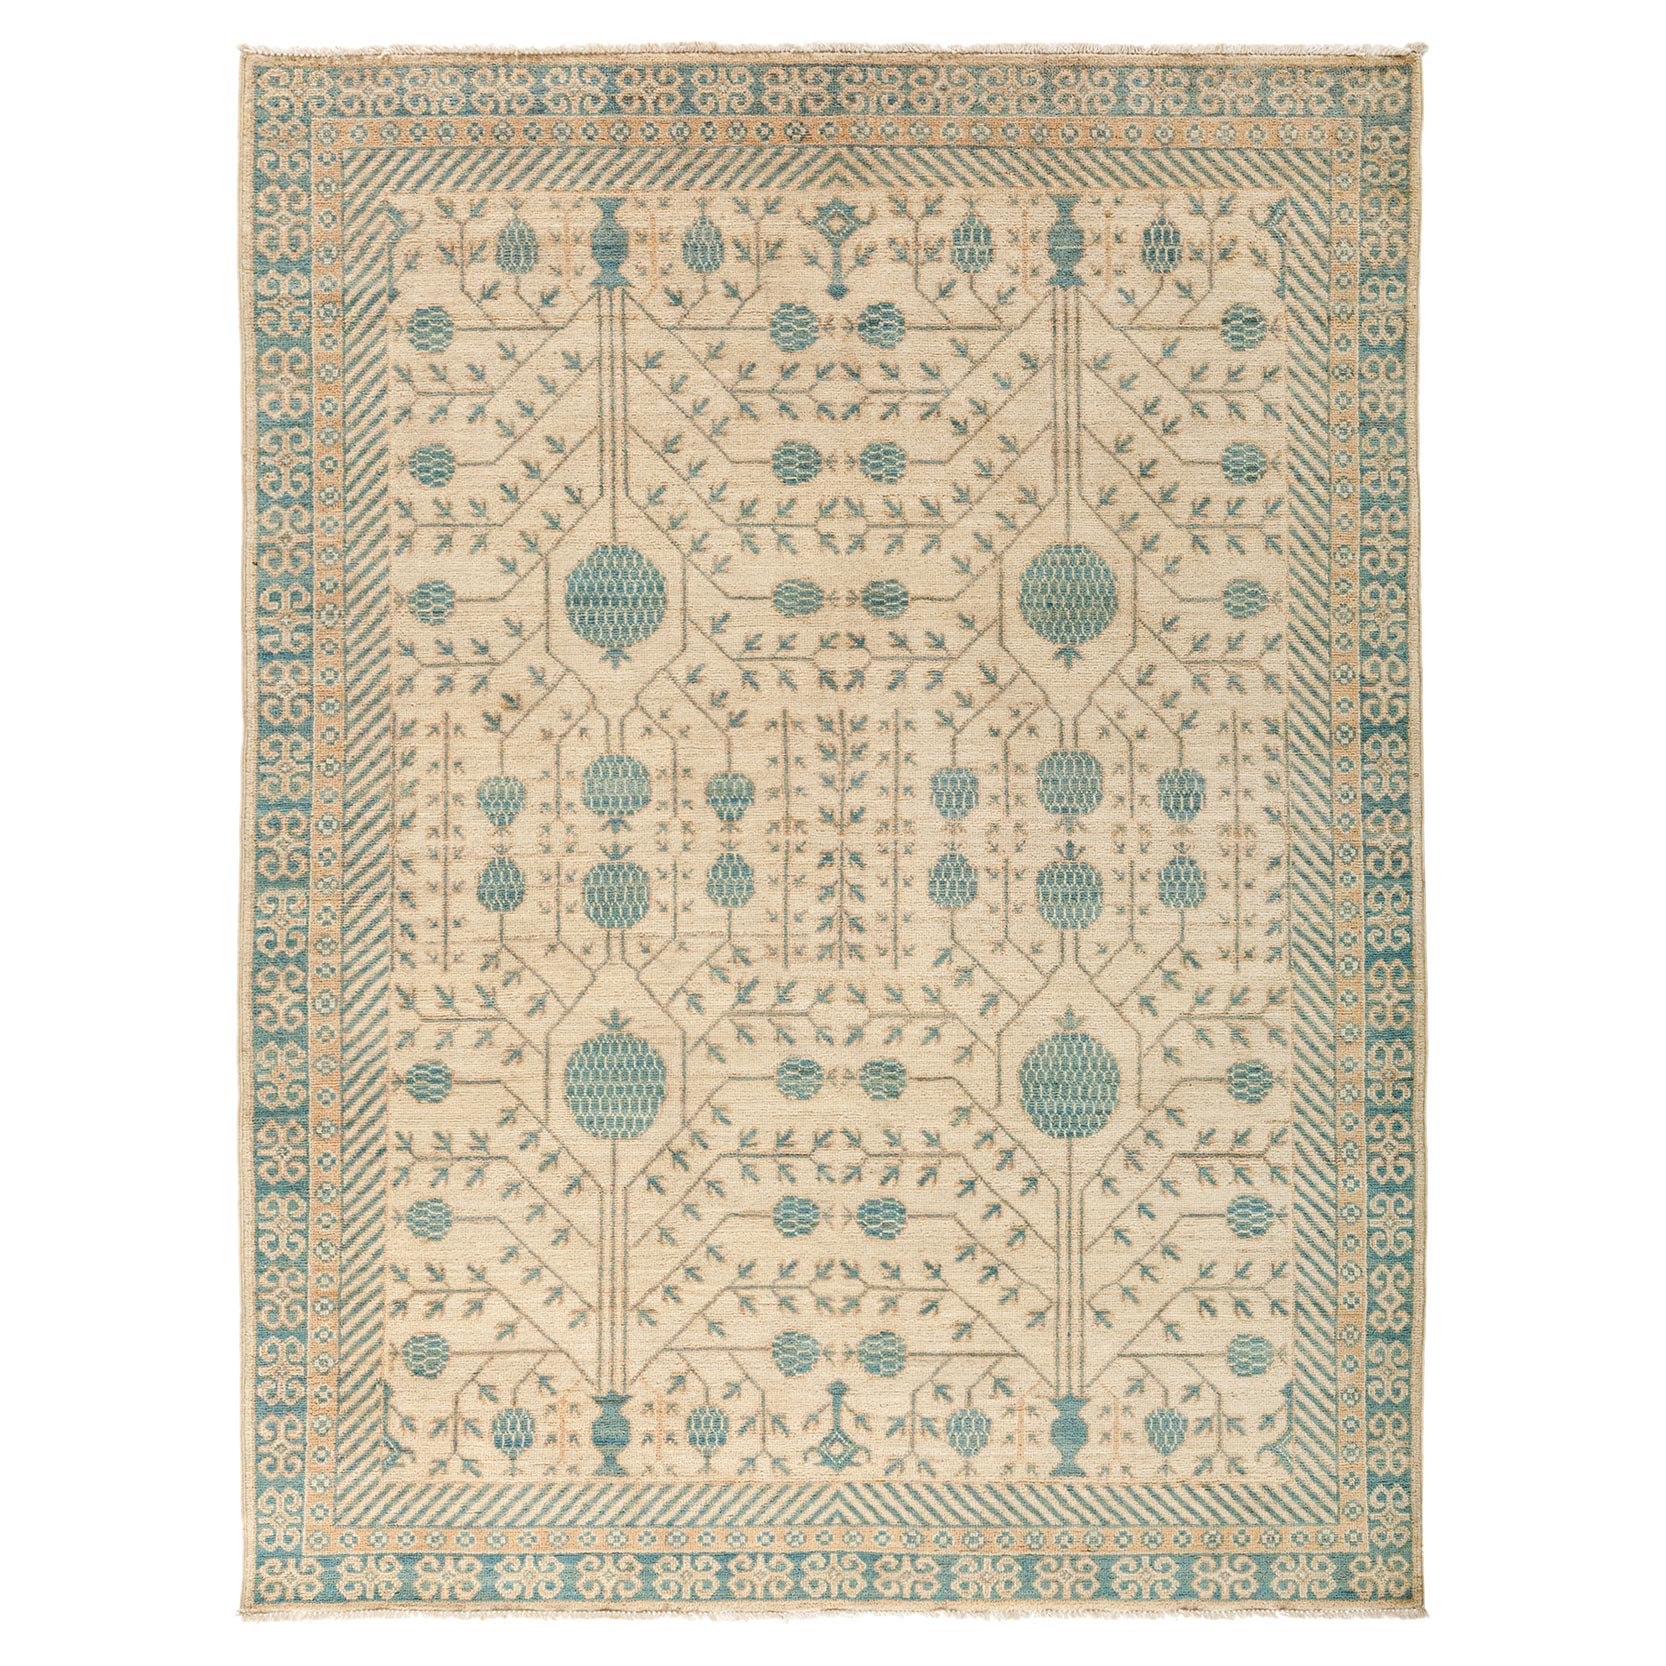 Lito French Country Blue Vine Wool Rug - 5'4 x 6'10